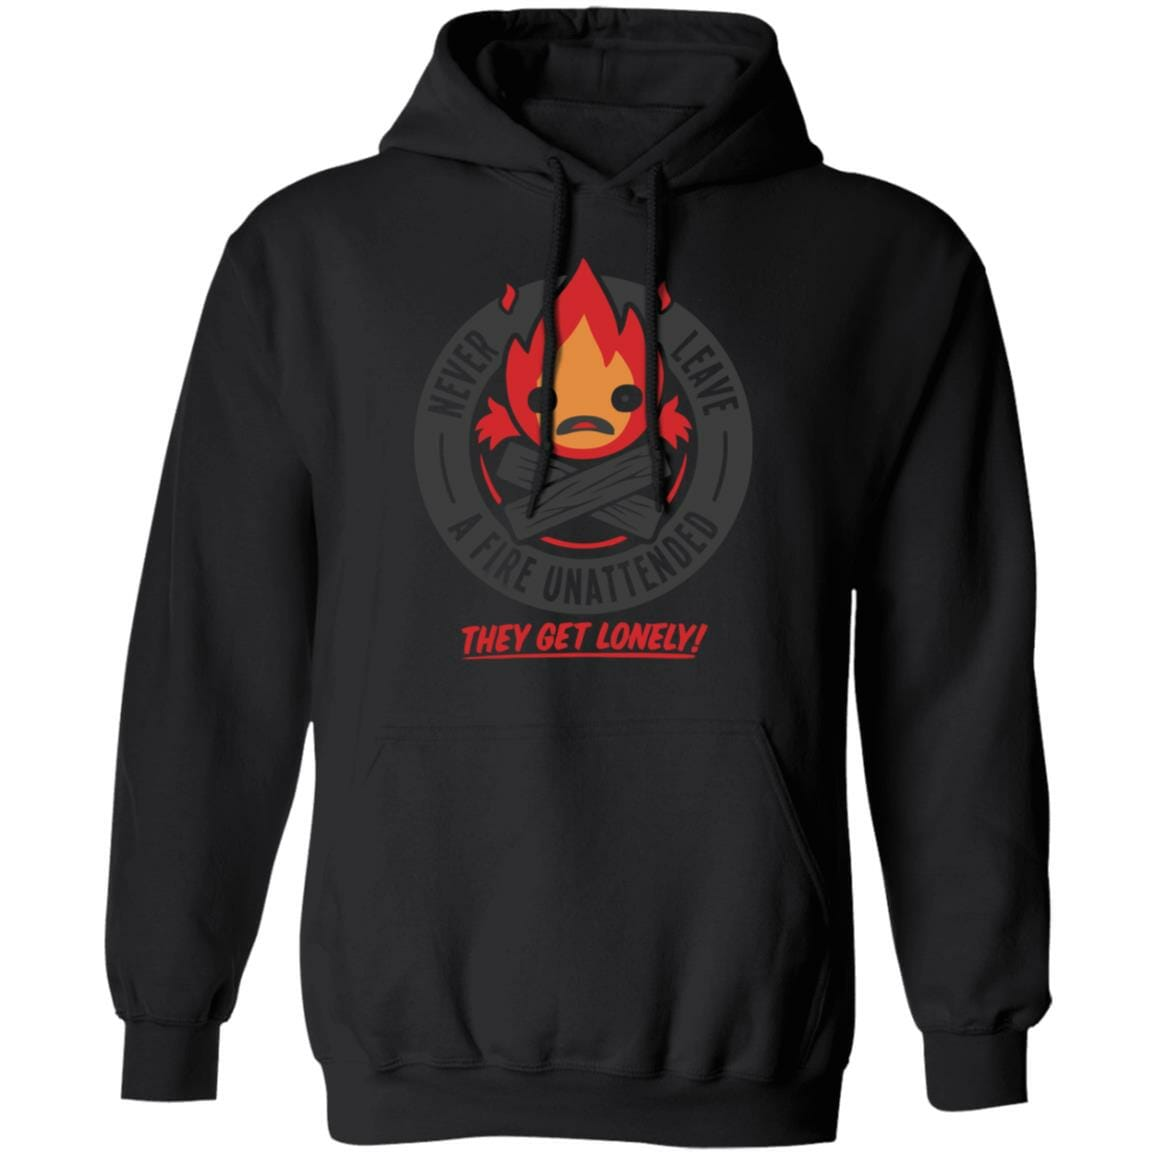 Howl's Moving Castle – Never Leave a Fire Hoodie